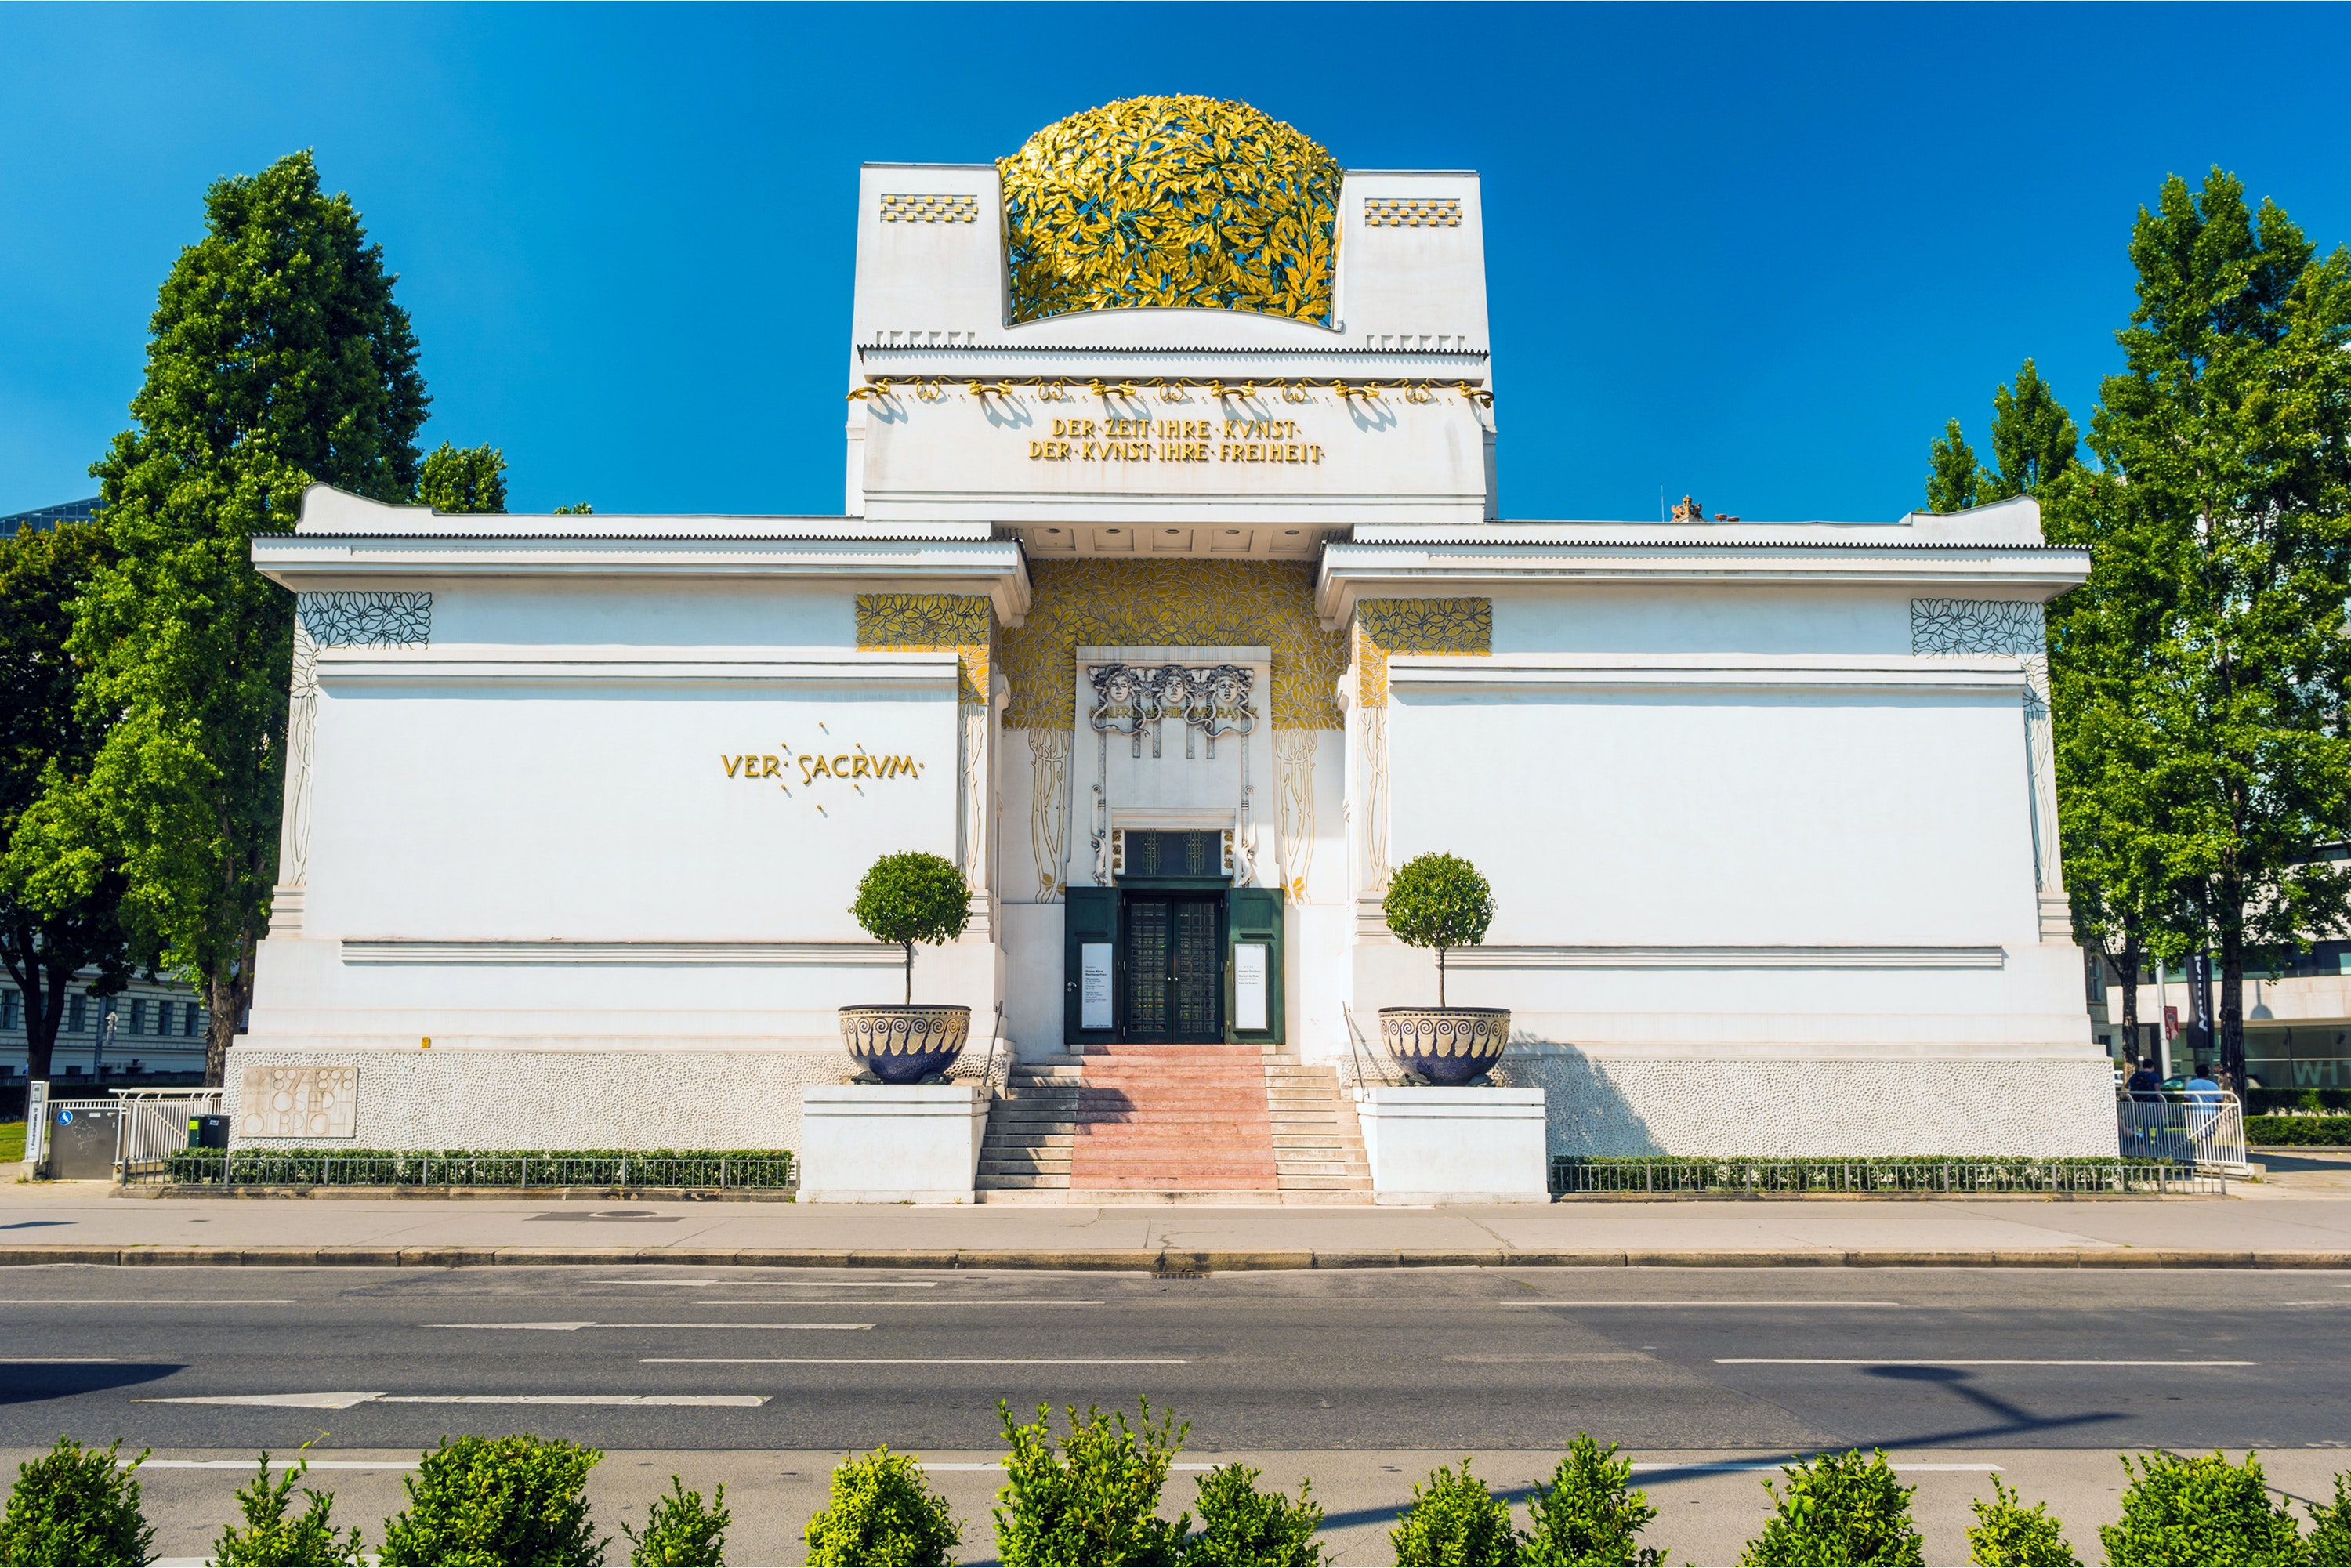 The Secession Building in Vienna was built in 1898 to display the works of secessionist artists.